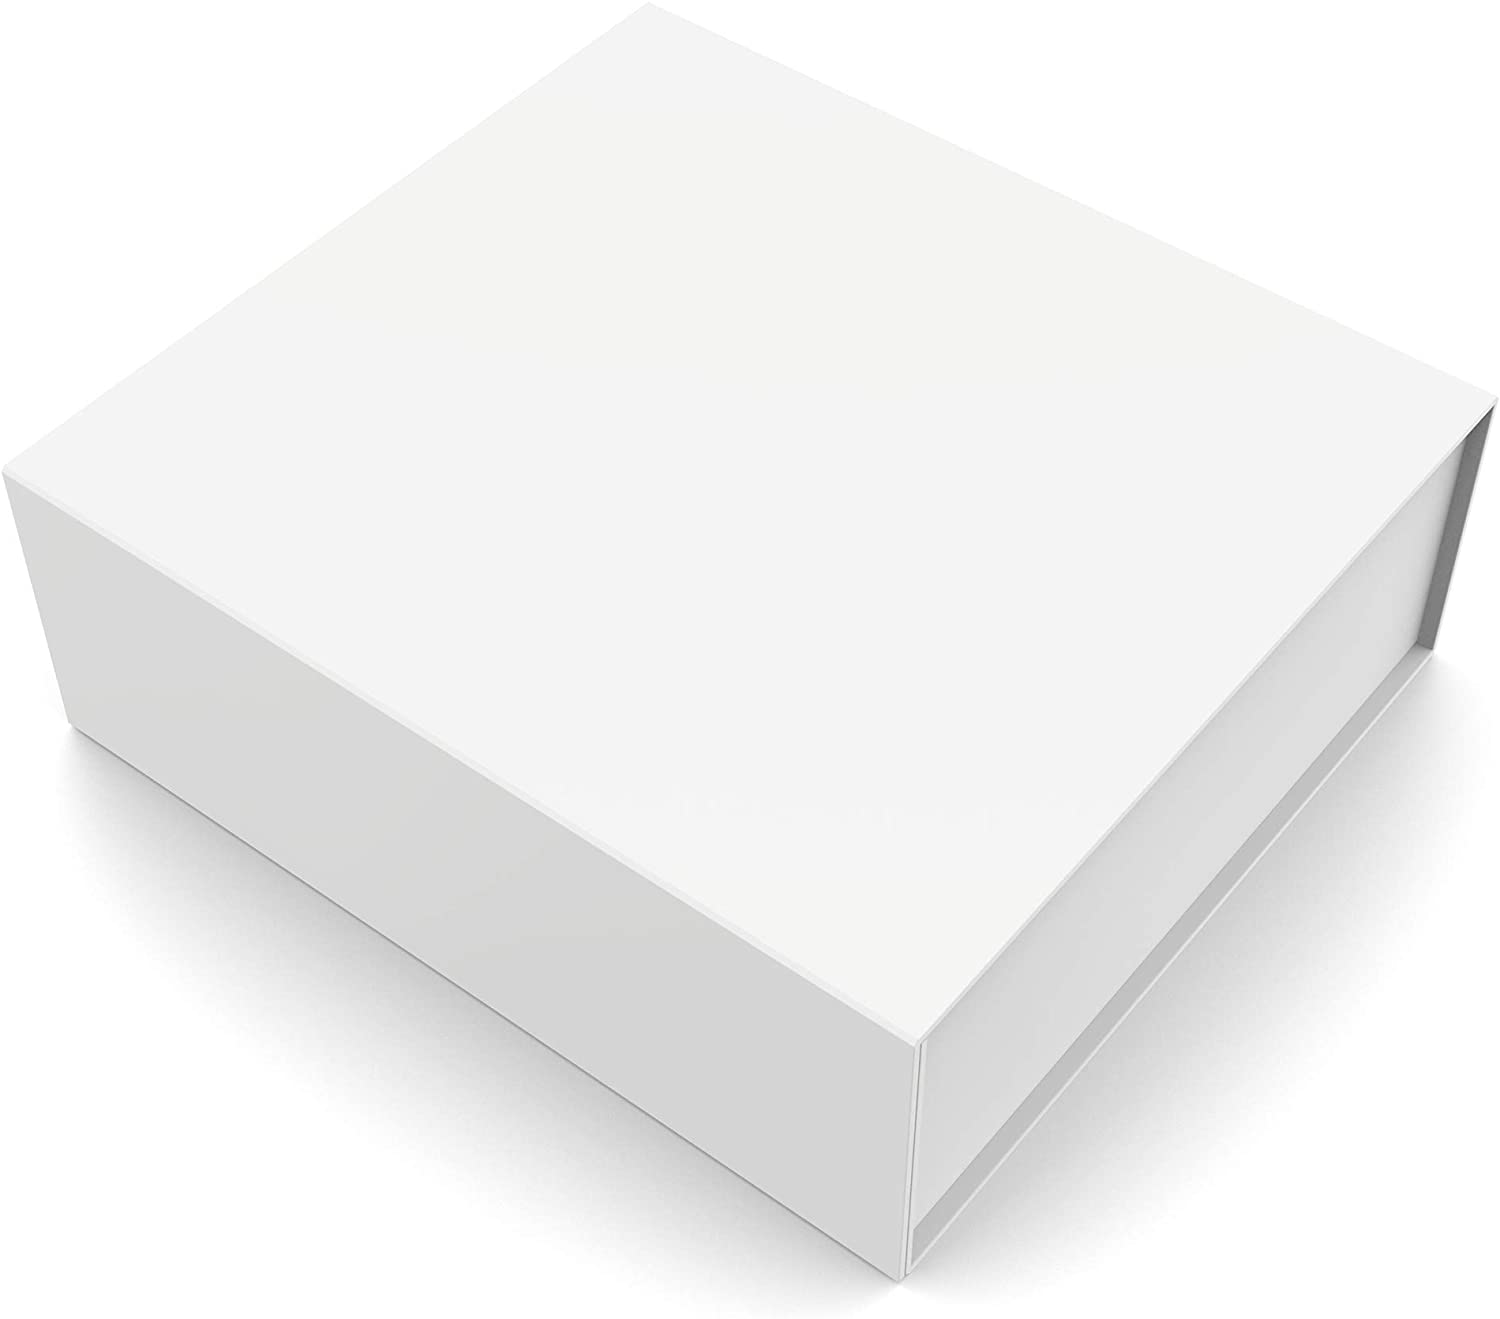 Gift Box Small Rectangle JIAWEI - 8.3x7.5x3.5inchs with Lids and Magnetic Closure for Weddings Birthday Bridesmaid Proposal and Baby Bridal Shower Fsa Gift Box Include a Greeting Card and Tissue Paper